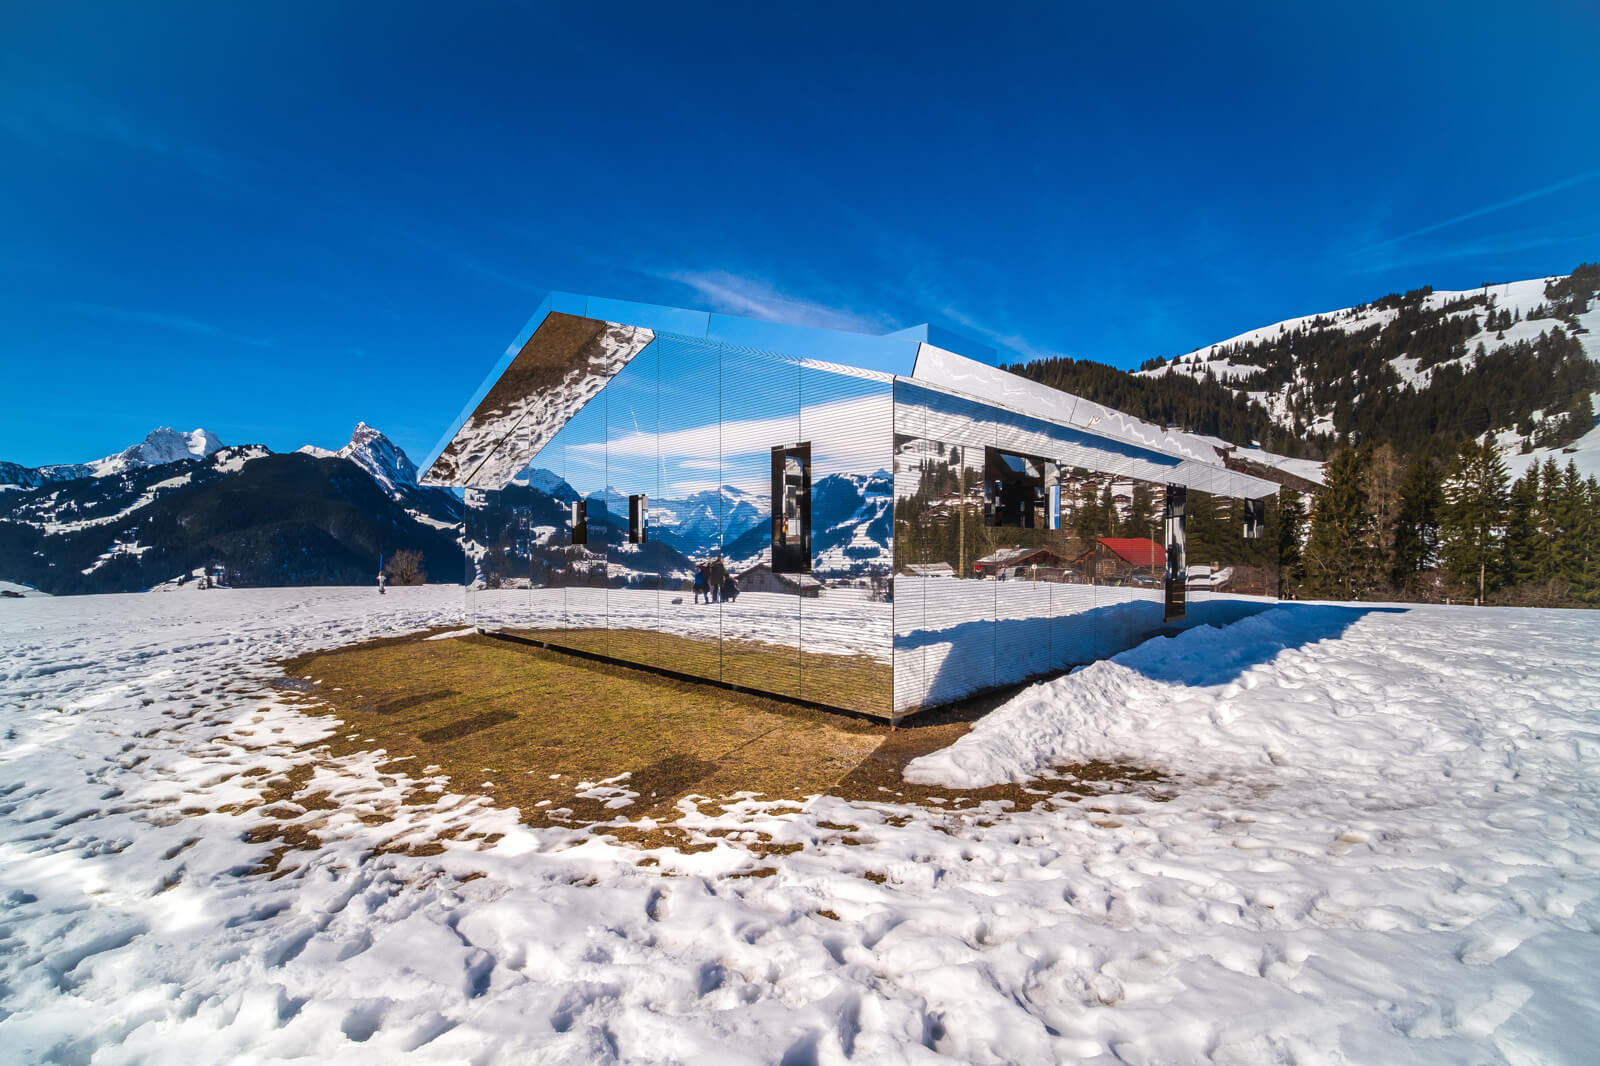 Mirage Chalet in Gstaad by Doug Aitken